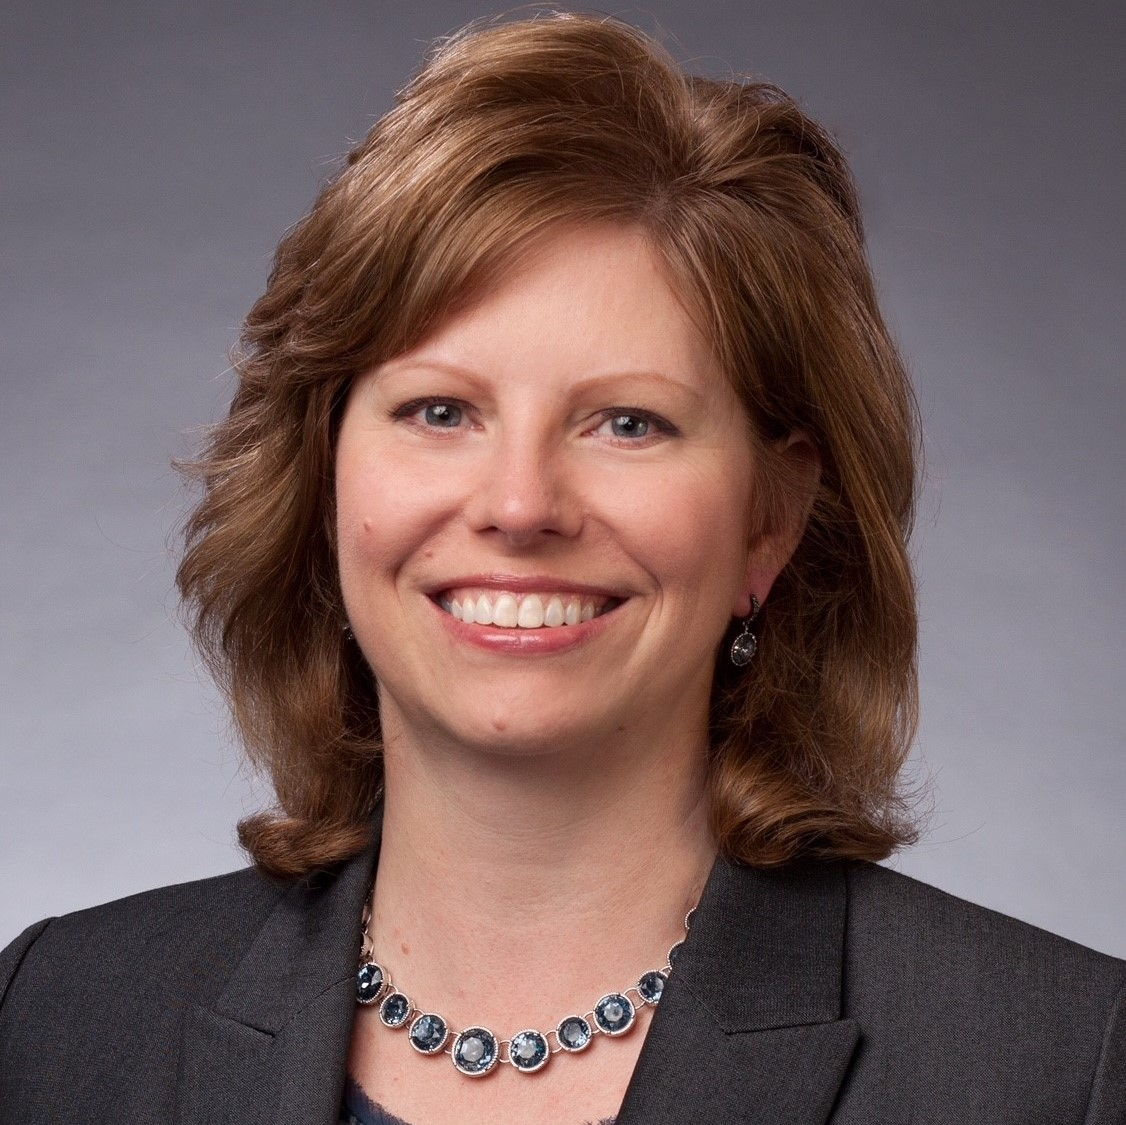 Tammie Champlin, Advancing Women Executives Accelerator Participant